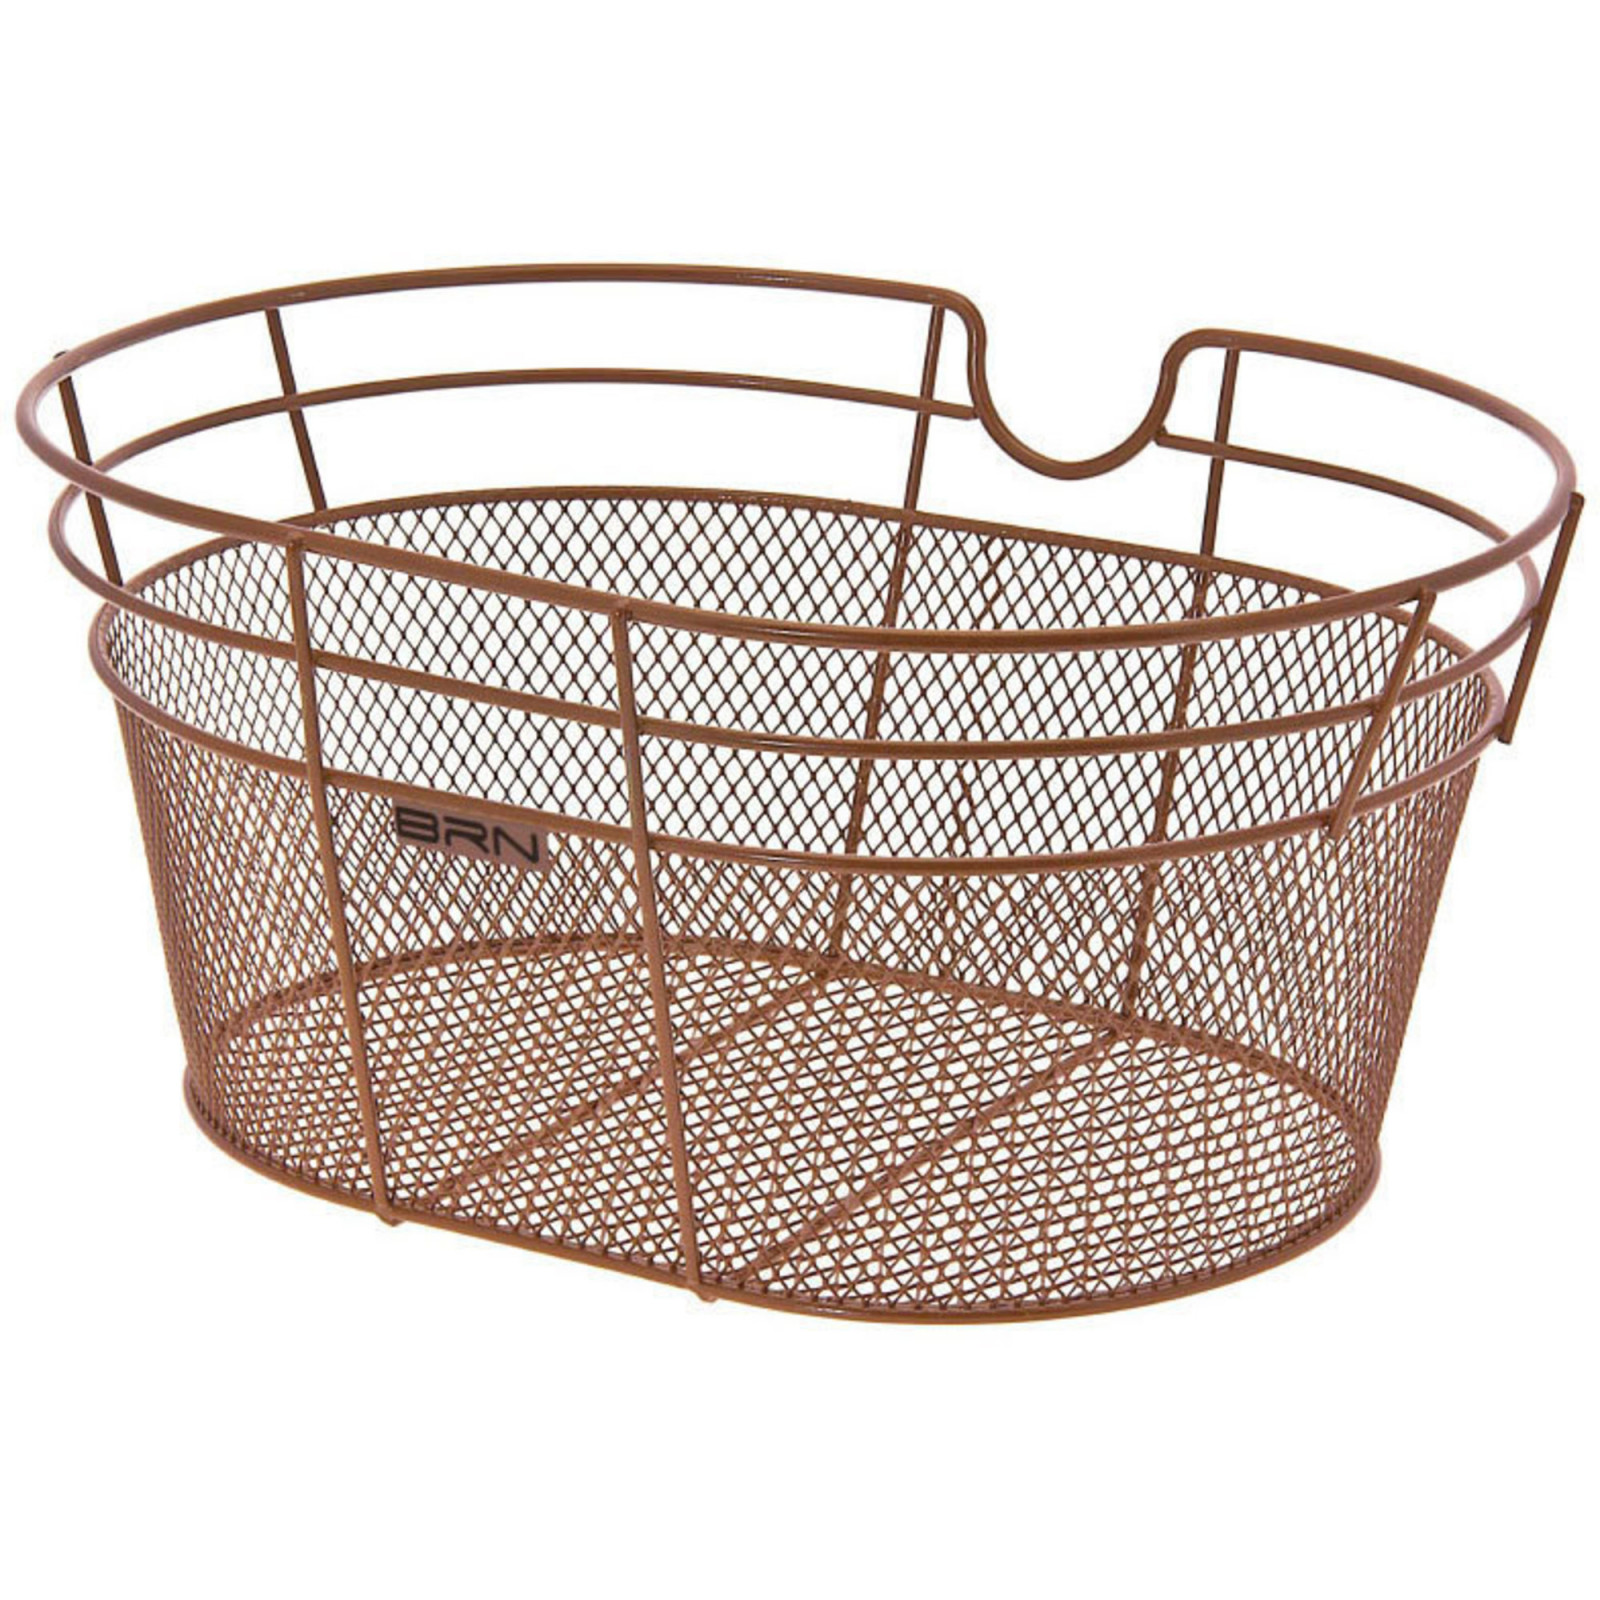 FANTASY METALLIC FRONT BICYCLE BASKET – IN COLOR HONEY